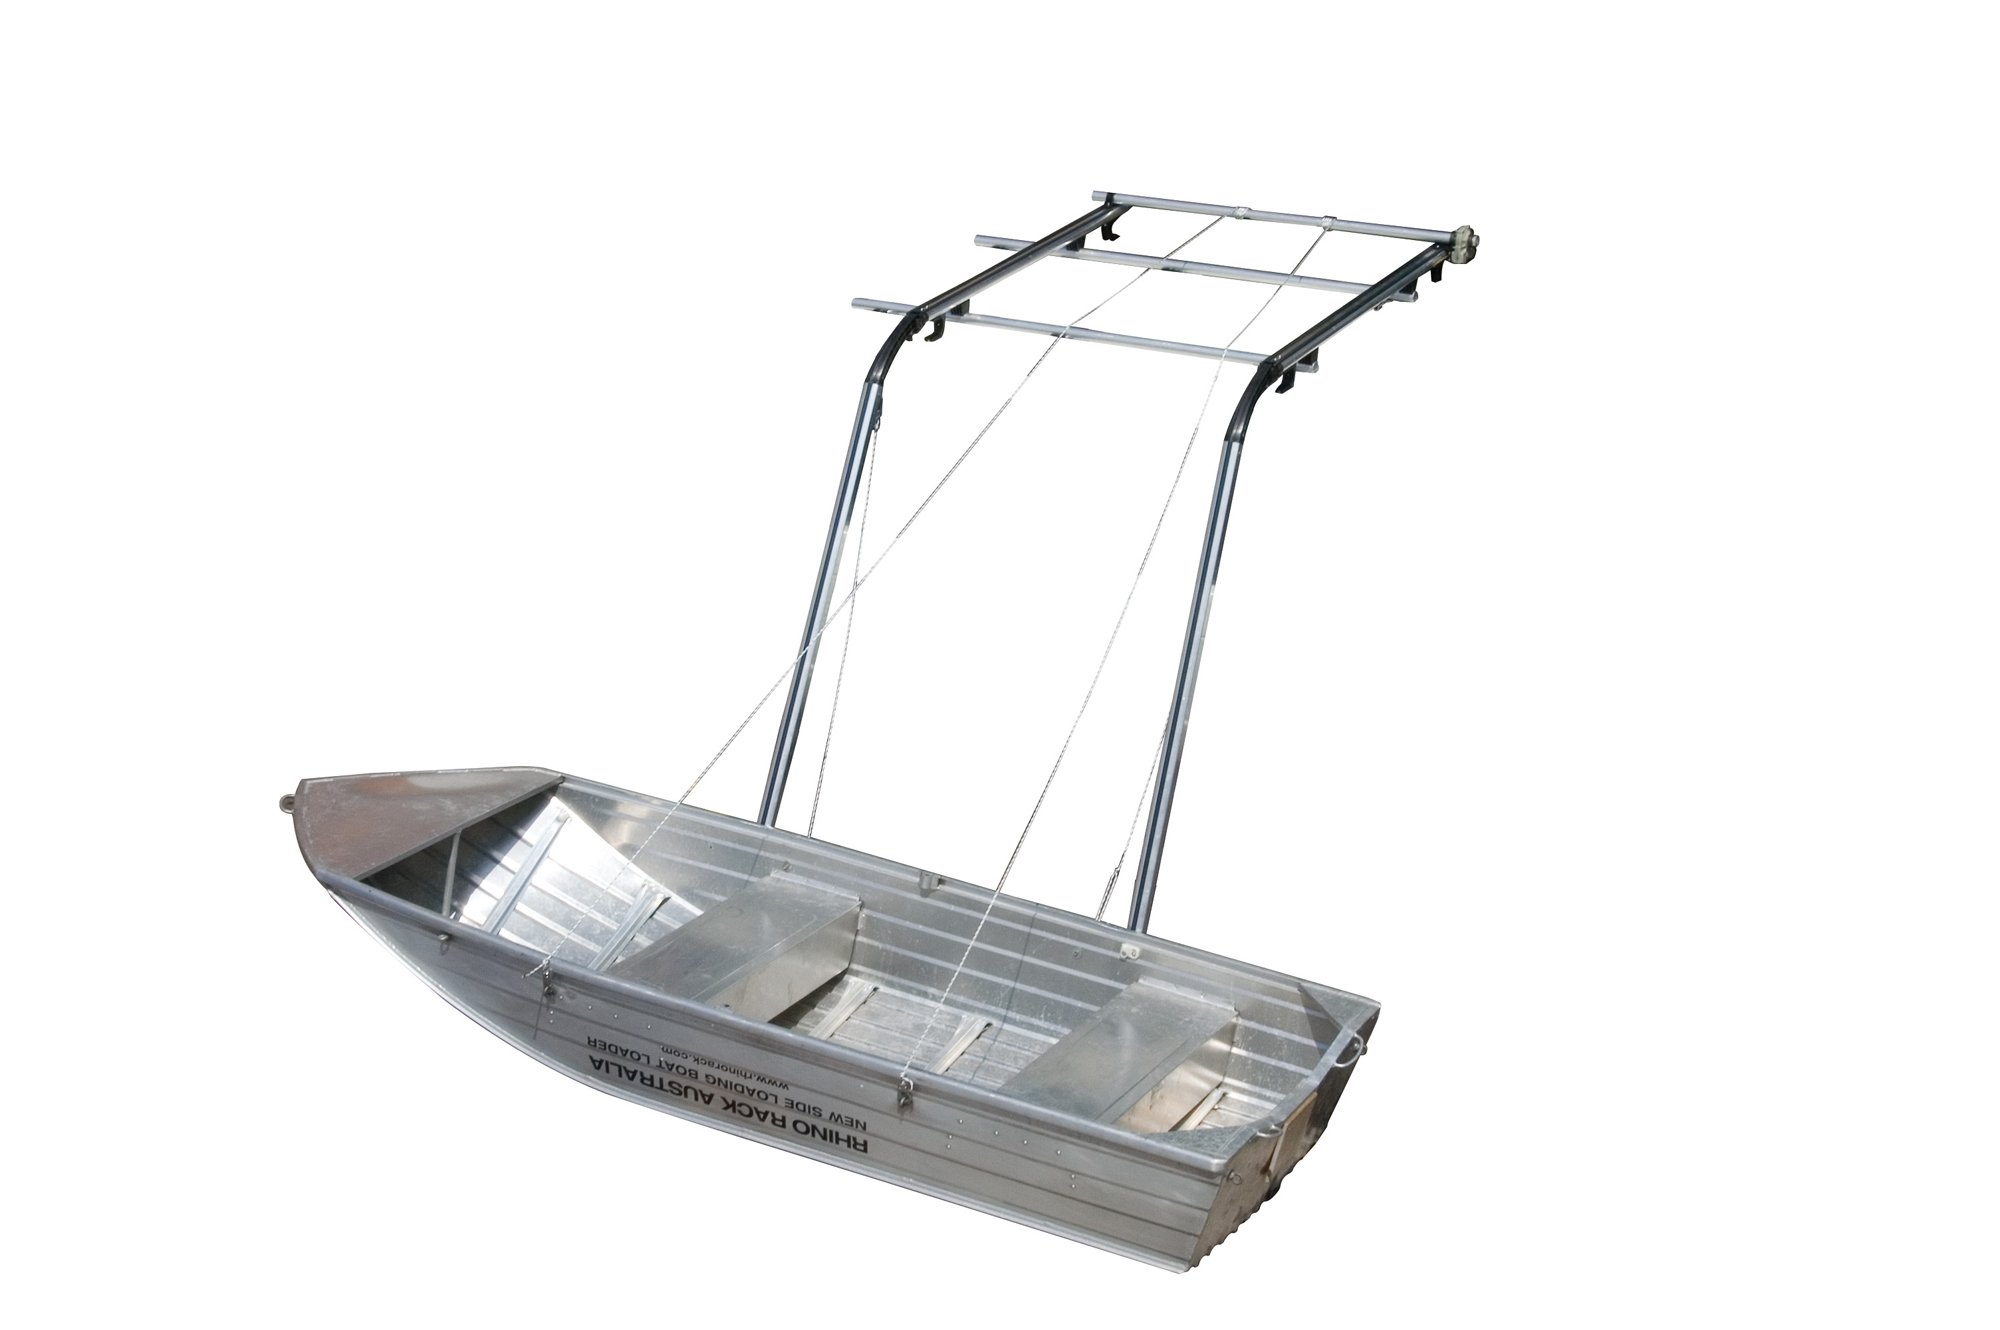 Rhino Rack Side Boat Loader (Fits Left Side of Vehicle)